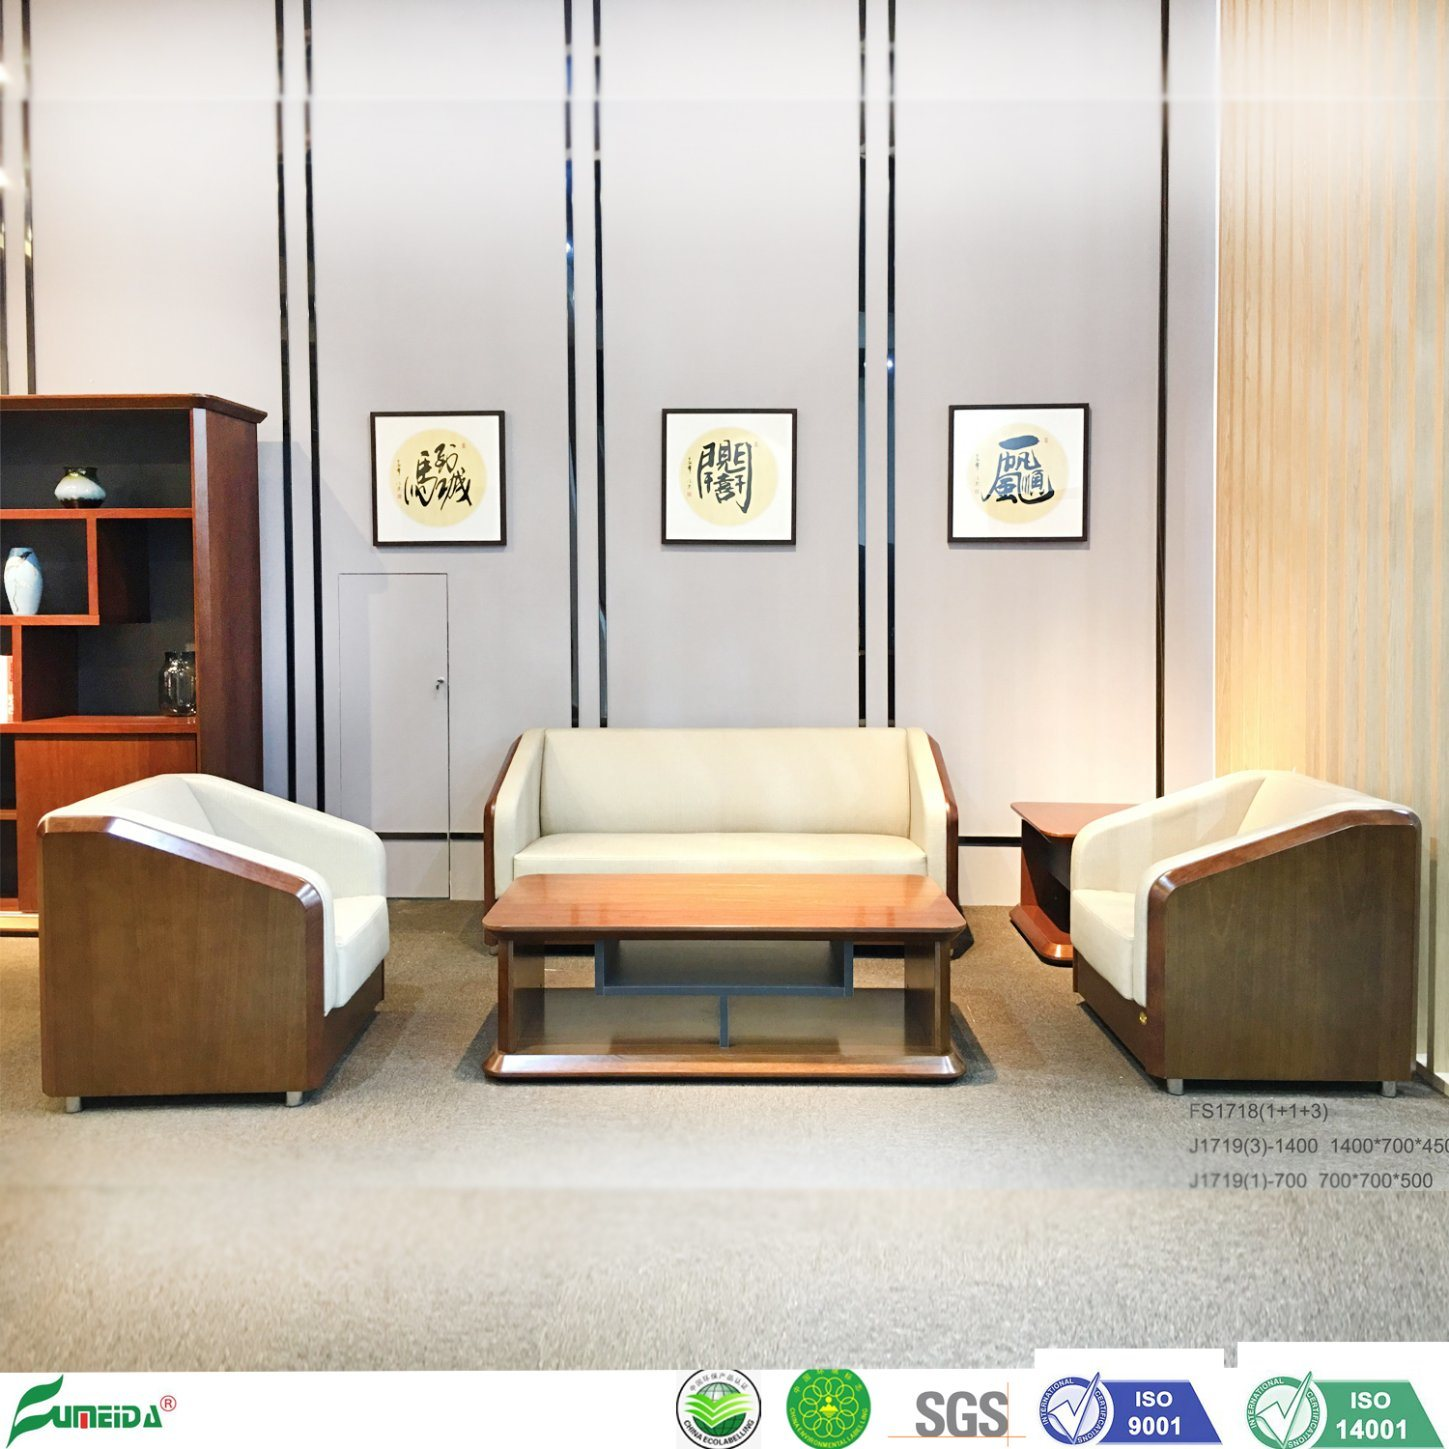 China Modern Hotel Office Leisure Combination Living Room Furniture Wooden Frame Leather Sofa Fs1718 China Sofa Leather Sofa